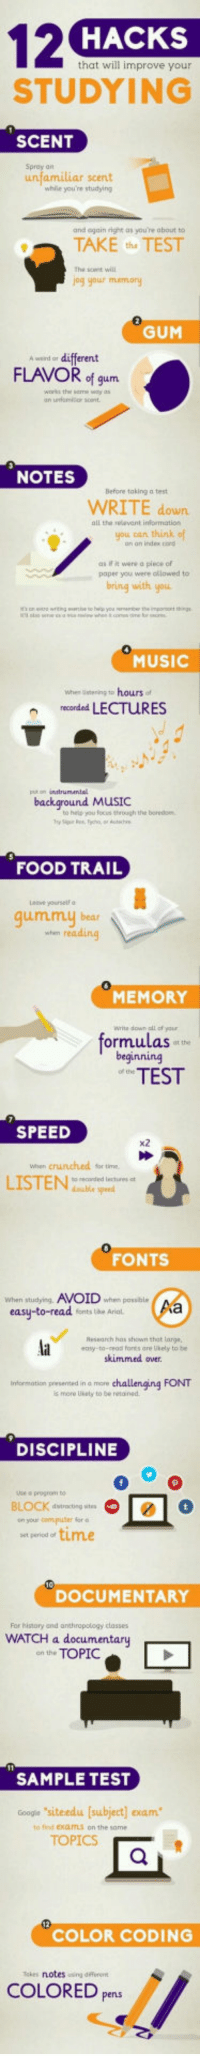 Af, Food, and Music: 12 HACKS  STUDYING  that will improve your  SCENT  Spray an  unfamiliar scent  whlie youre studying  and egain right as you're abaut to  TAKE the TEST  The scent will  jog your memory  GUM  A werd or different  FLAVOR of gum  an edanilar  NOTES  Before taking a test  WRITE down  you can think of  all the evant information  as ifit were a piece cf  papee you were ollowed to  bring with you  4  MUSIC  When istening to hours af  recorded LECTURES  background MUSIC  to held you focus rough the boredm  FOOD TRAIL  Leht yourself ง  qummU bear  stem reading  0  MEMORY  Write down all of you  ormulasot the  beginning  TEST  SPEED  x2  when crunched tor time  LISTEN  sabie speed  FONTS  When studying. AVOIDwhen posble  easy-to-reads r  Hesearch has shown that large,  ecsy-to-eroa forts ơre utely to be  skimmed over.  ging FONT  Informotion presented in a mcre  s more Ukety to be retoned  DISCIPLINE  use a progrom to  BLOCK dstracting ste  on your ceersputer for  time  DOCUMENTARY  For history and anthropology classes  WATCH a documentary  an the TOPIC  SAMPLE TEST  Googie siteedu [subject] exam  to find ExOLITLS on the same  TOPICS  COLOR CODING  Takes notes ing dffere  COLORED pens <p>How To Improve Your Studying.</p>